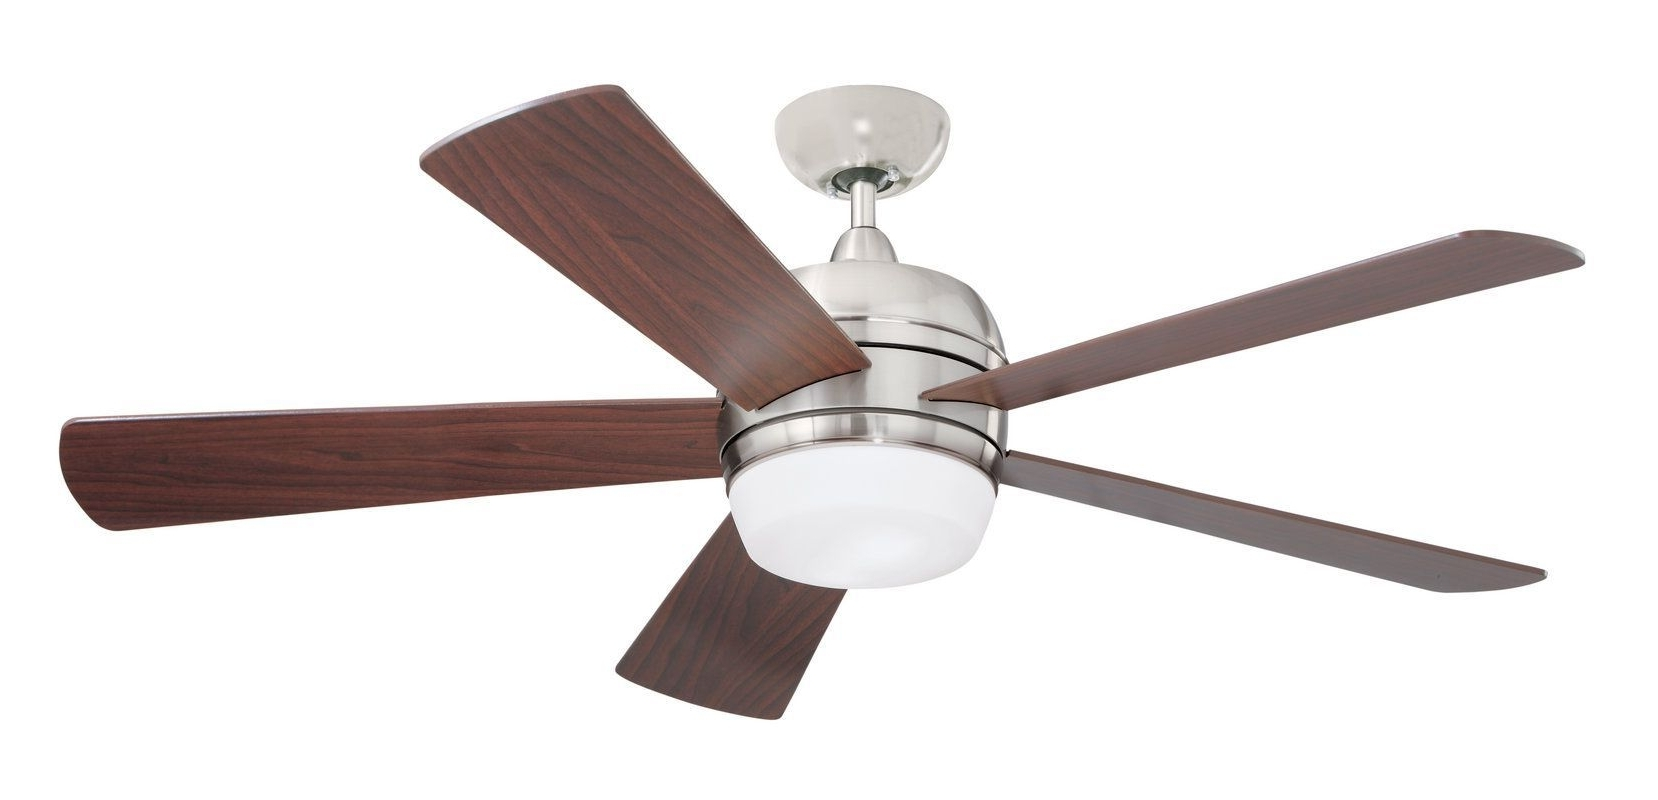 "Recent Emerson Cf930 Atomical 52"" 5 Blade Ceiling Fan – Blades And Light Throughout Emerson Outdoor Ceiling Fans With Lights (View 16 of 20)"